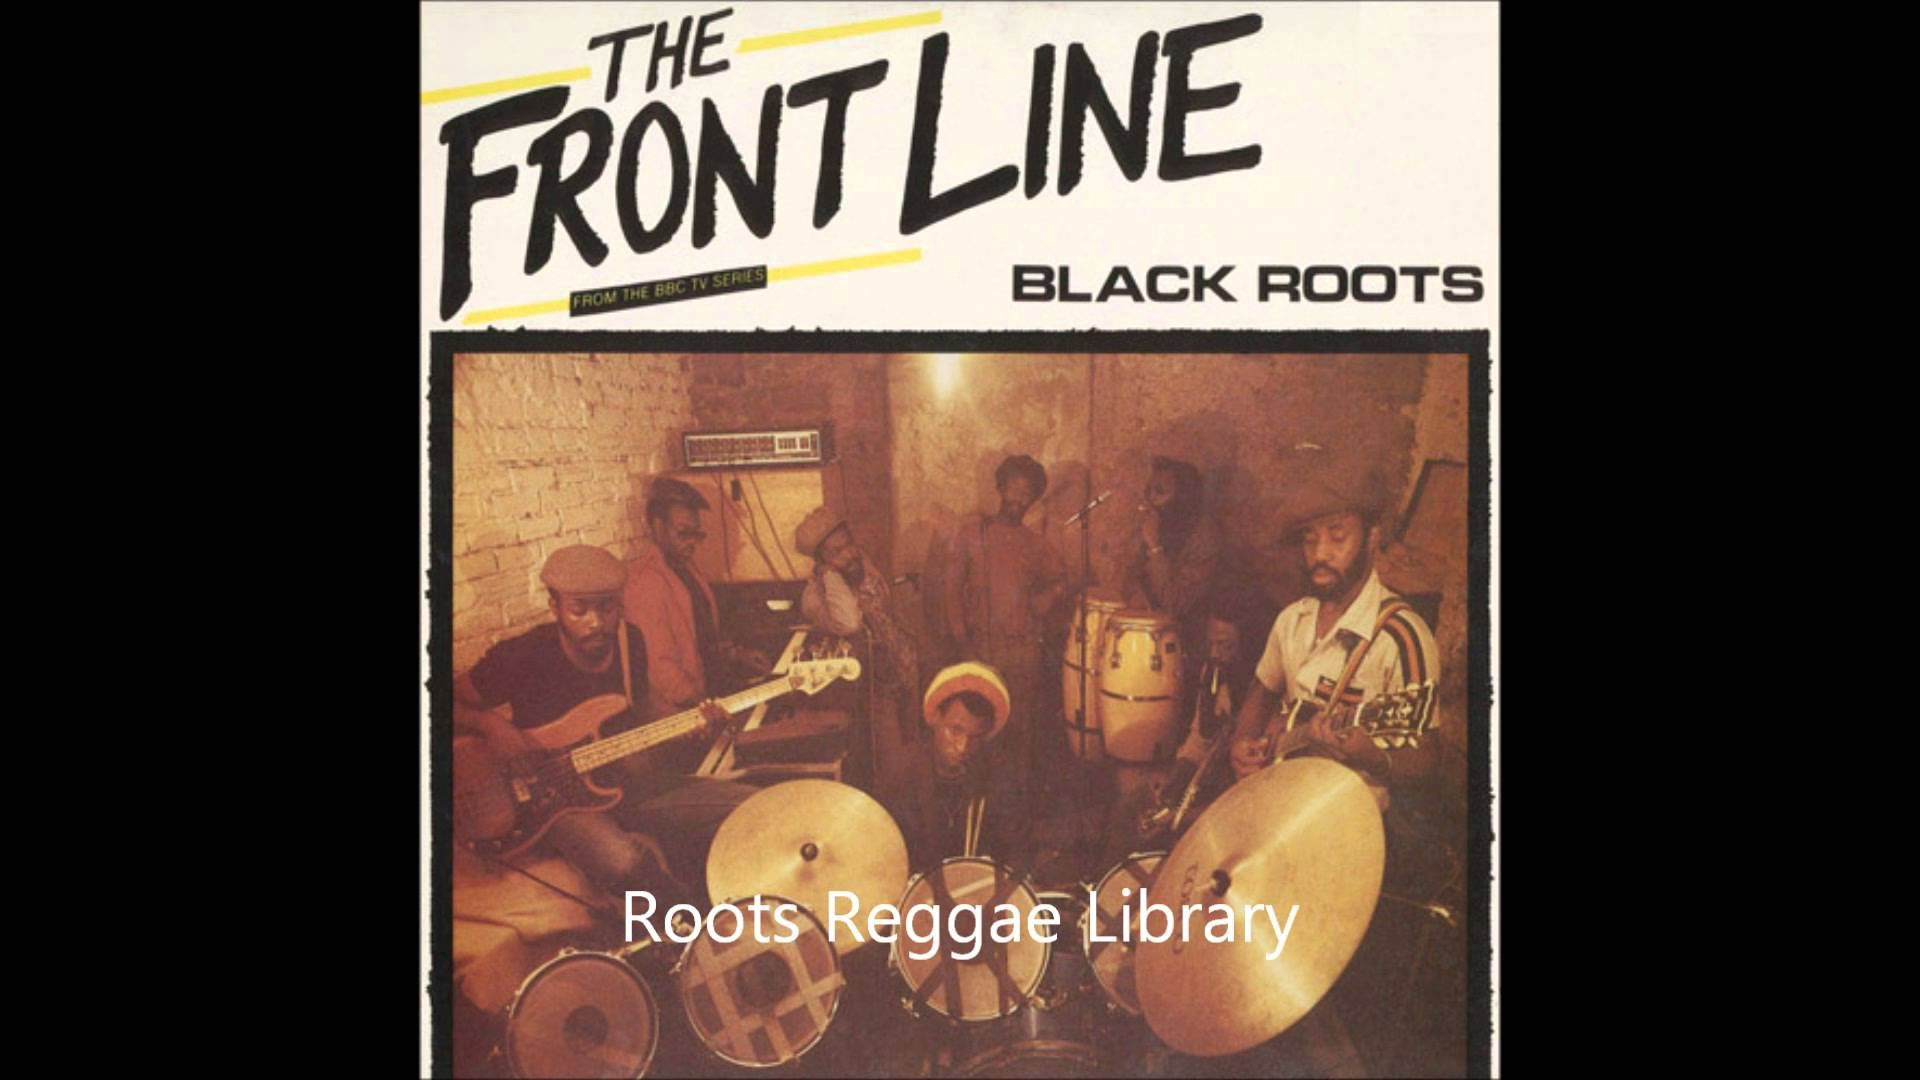 For a full review: http://www.roots-reggae-library.com/2012/10/black-roots.html Find us on Facbook: http://www.facebook.com/rootsreggaelibrary 01. (0:00:00) ...